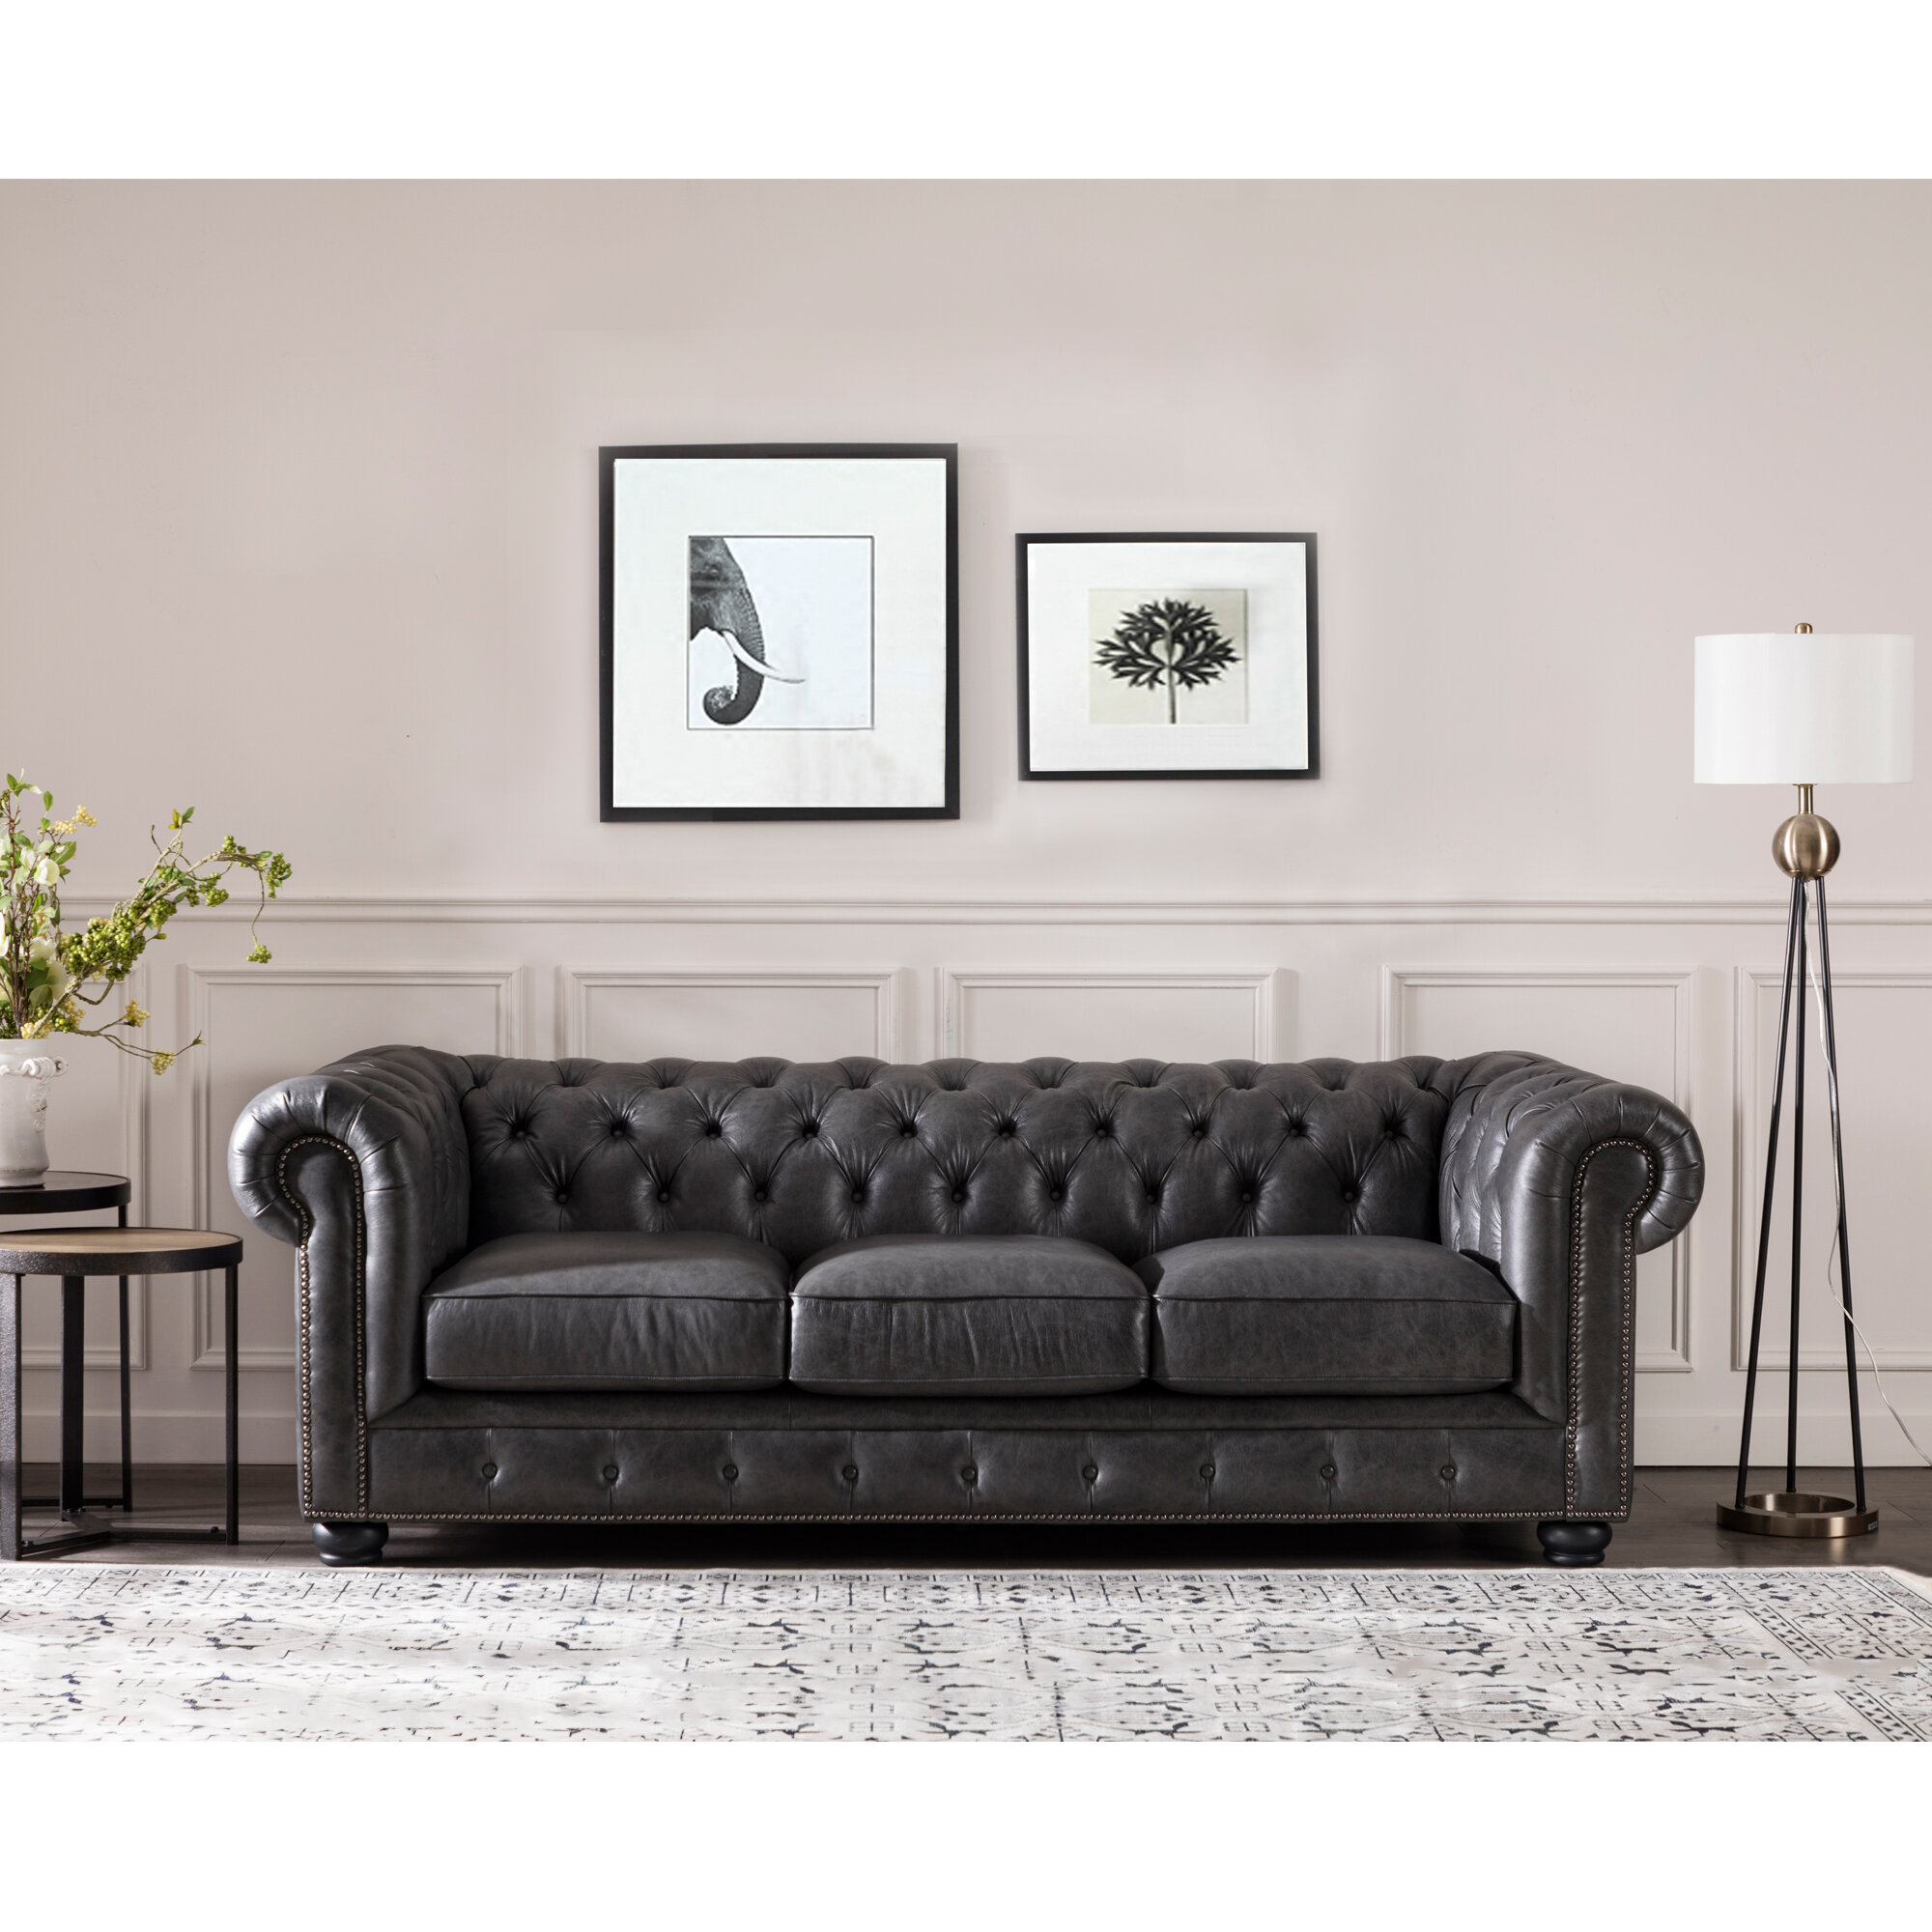 Superb Brinson Leather Chesterfield Sofa Spiritservingveterans Wood Chair Design Ideas Spiritservingveteransorg